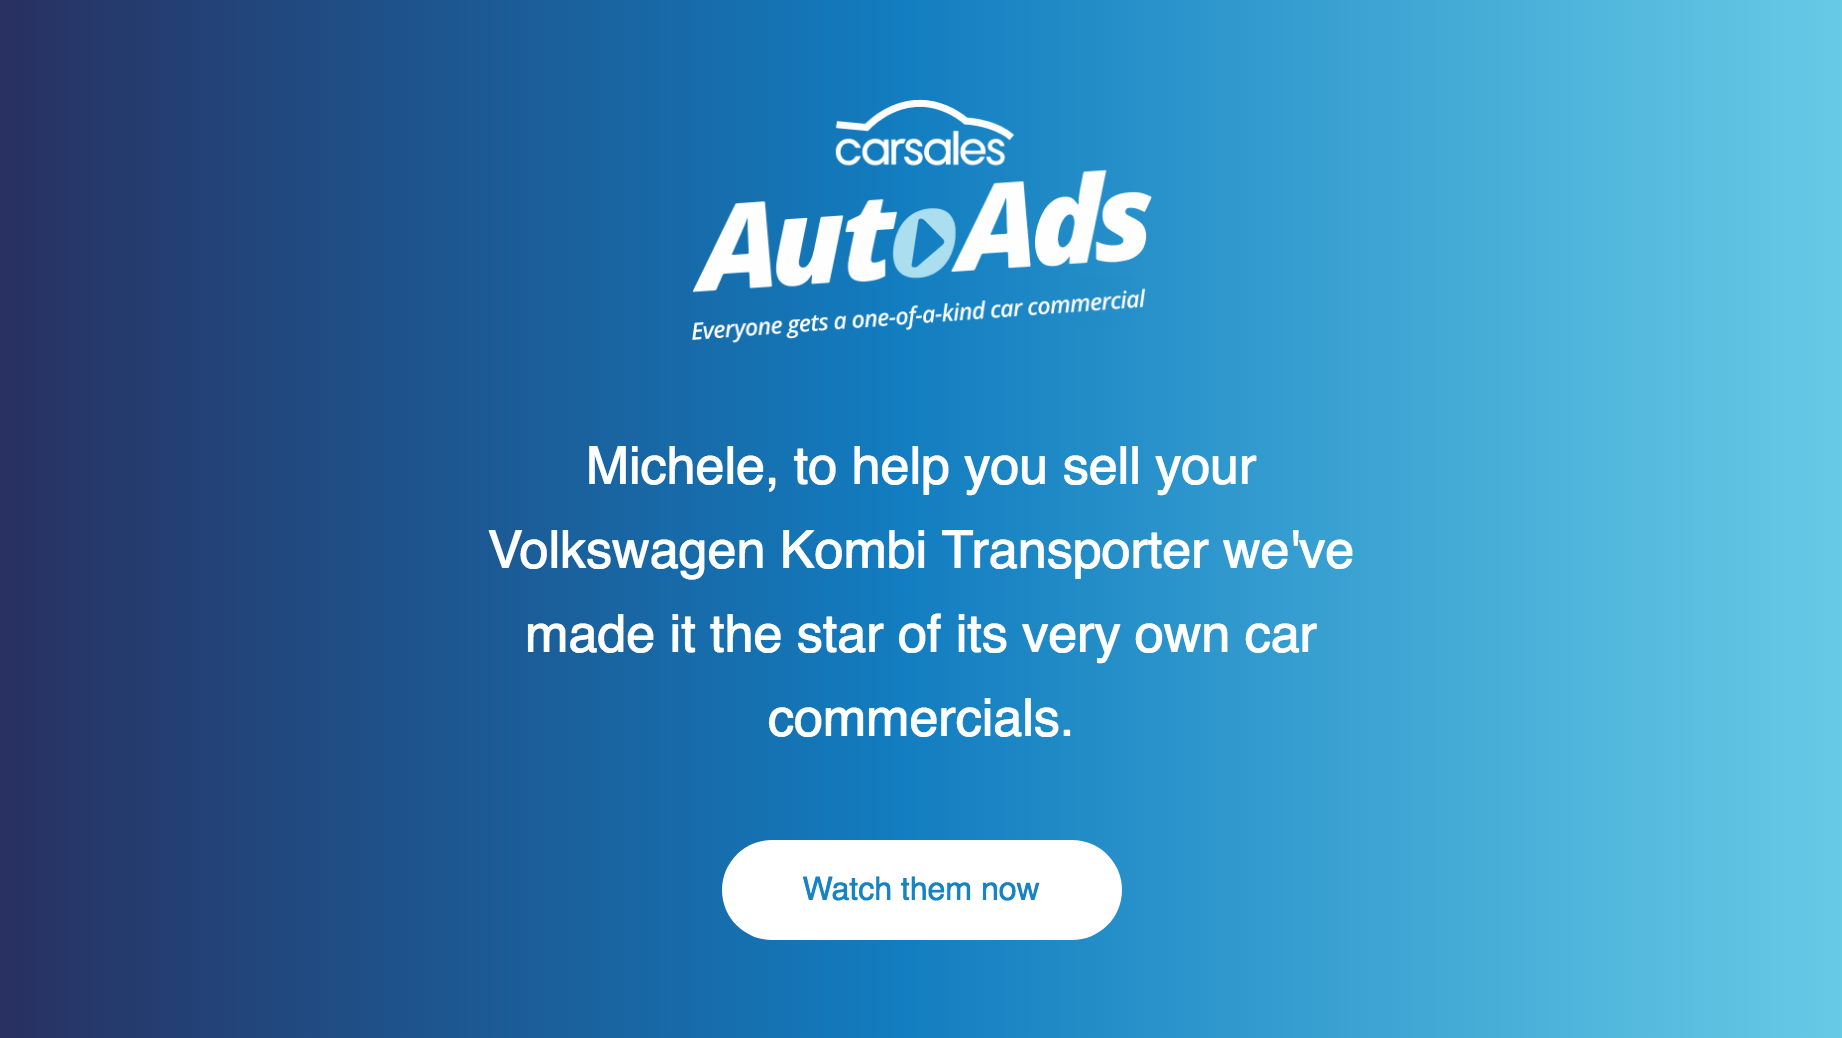 Screenshot showing copy on AutoAds